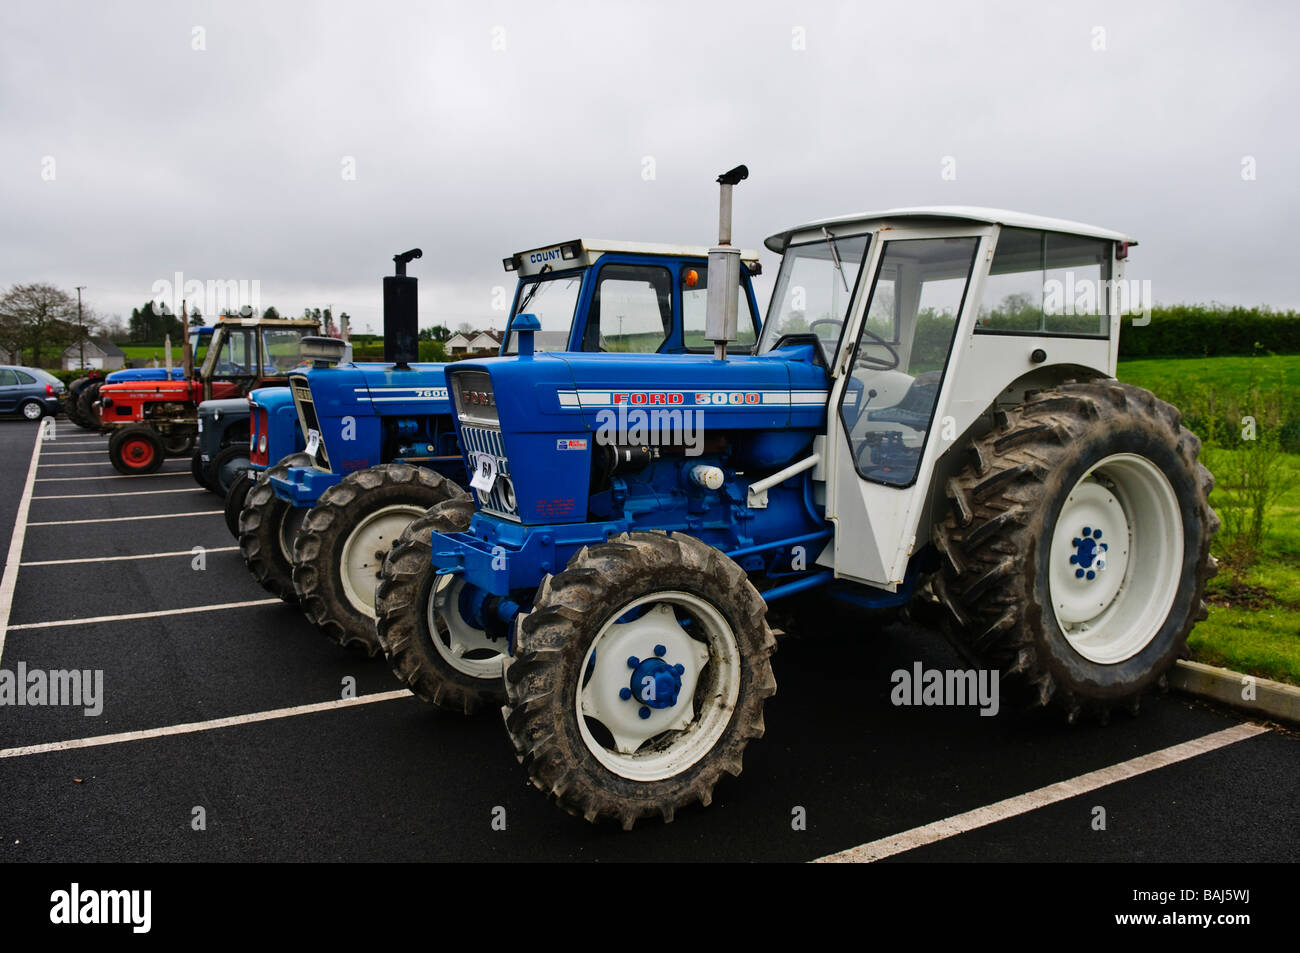 Ford Farm Tractors : Two blue ford farm tractors parked in a carpark other